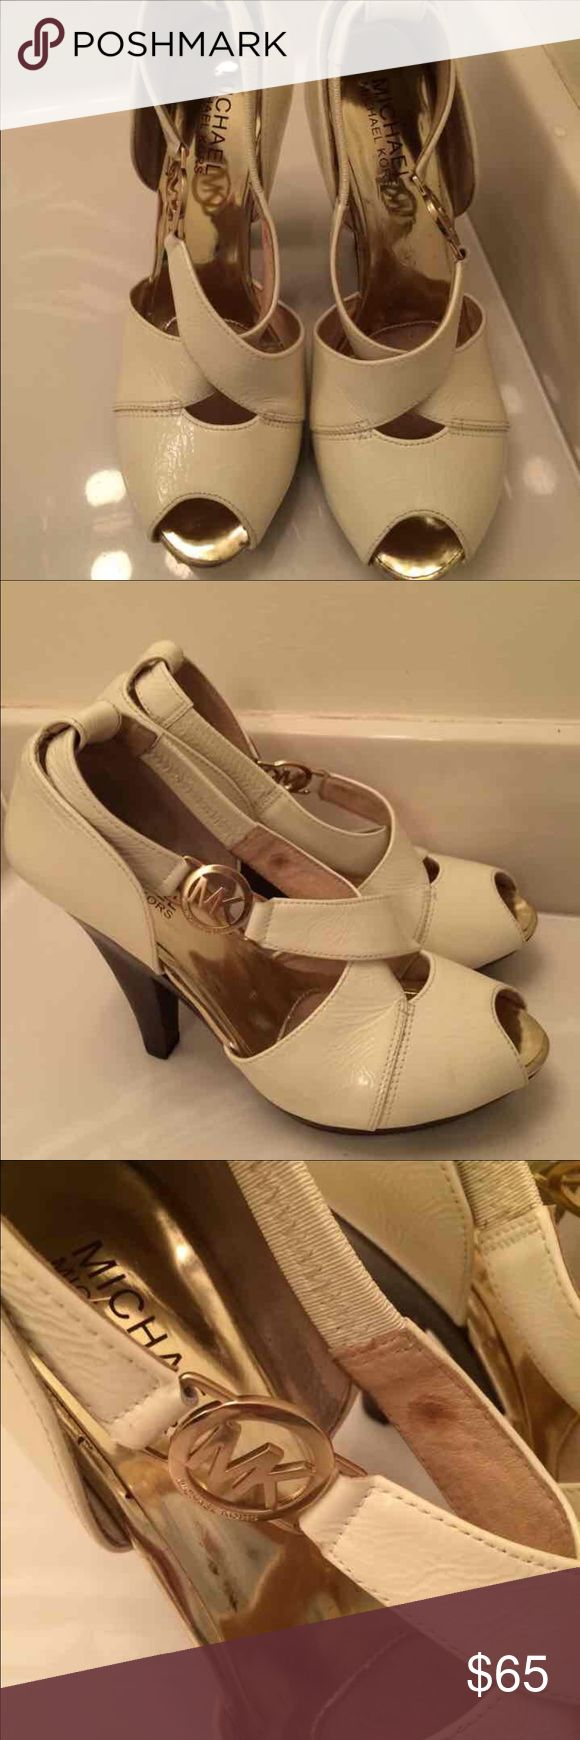 Michael Kors Authentic Cream Pumps Size 5 Michael Kors Authentic Cream Pumps Size 5 GUC some wear,  🚫Trades, paypal, any questions in the comments regarding price please use the offer button or they will be ignored🚫 Michael Kors Shoes Sandals